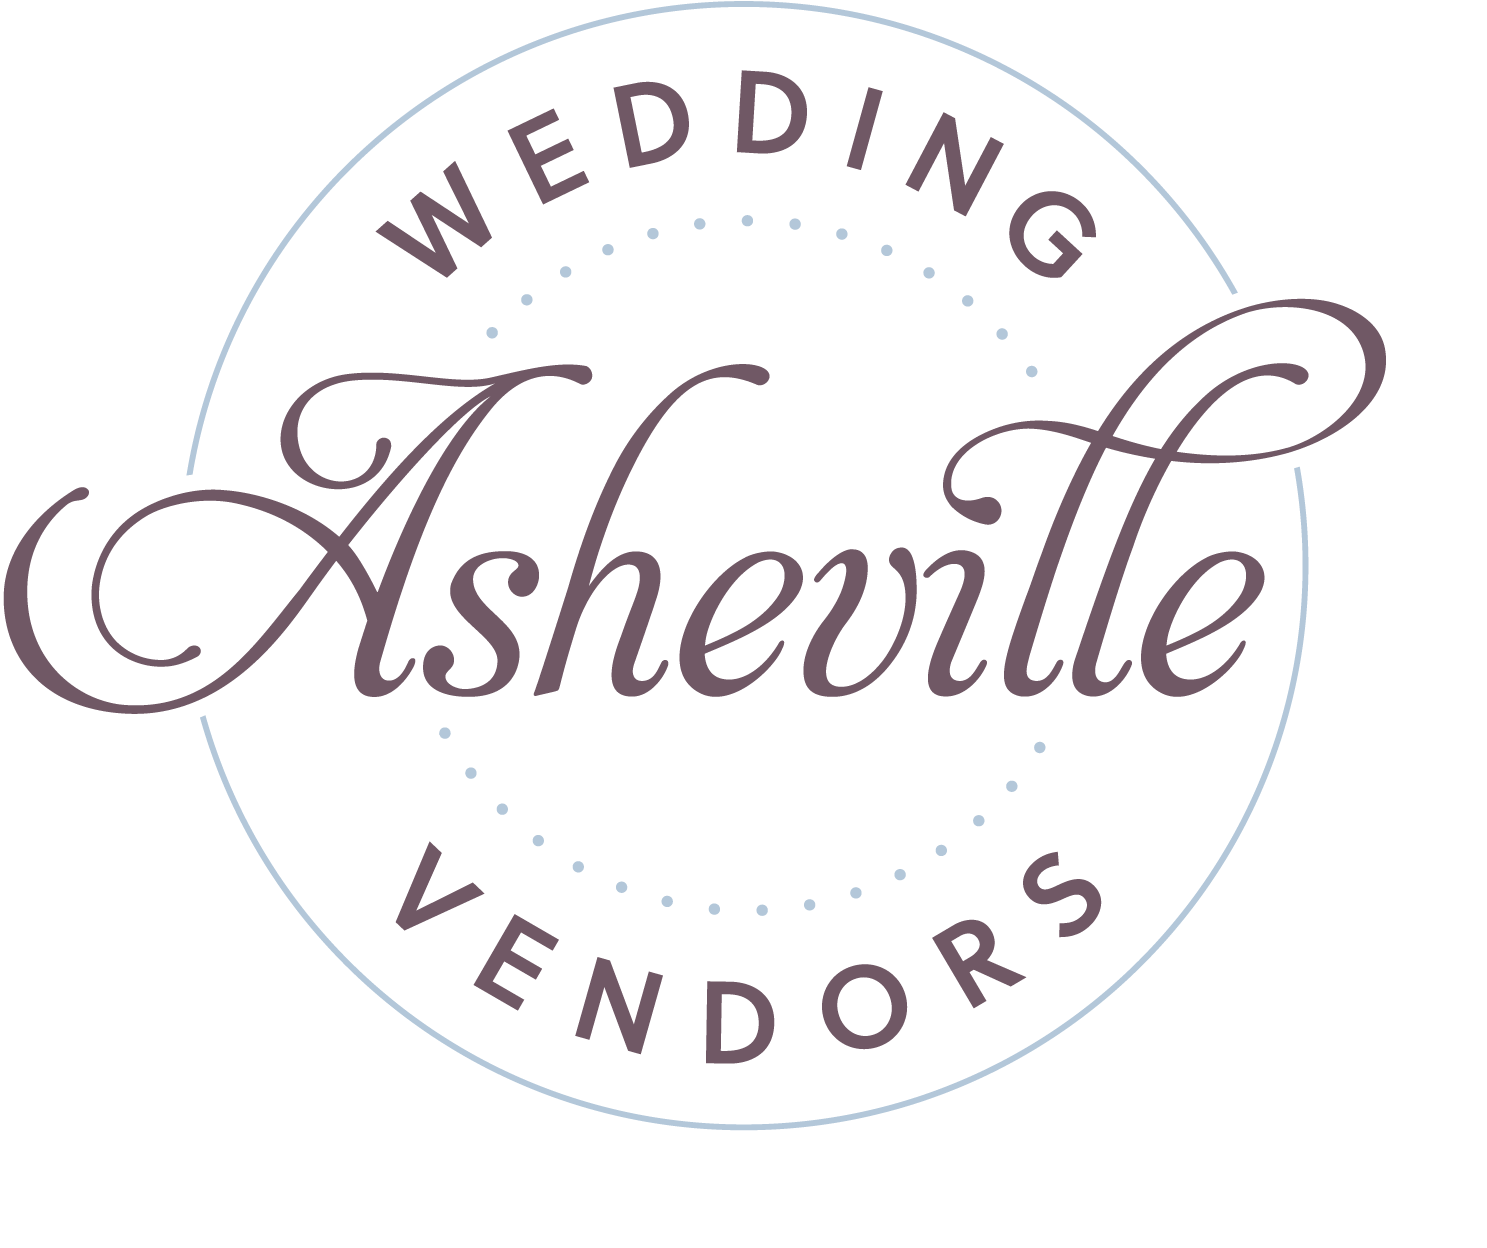 Asheville Wedding Vendors